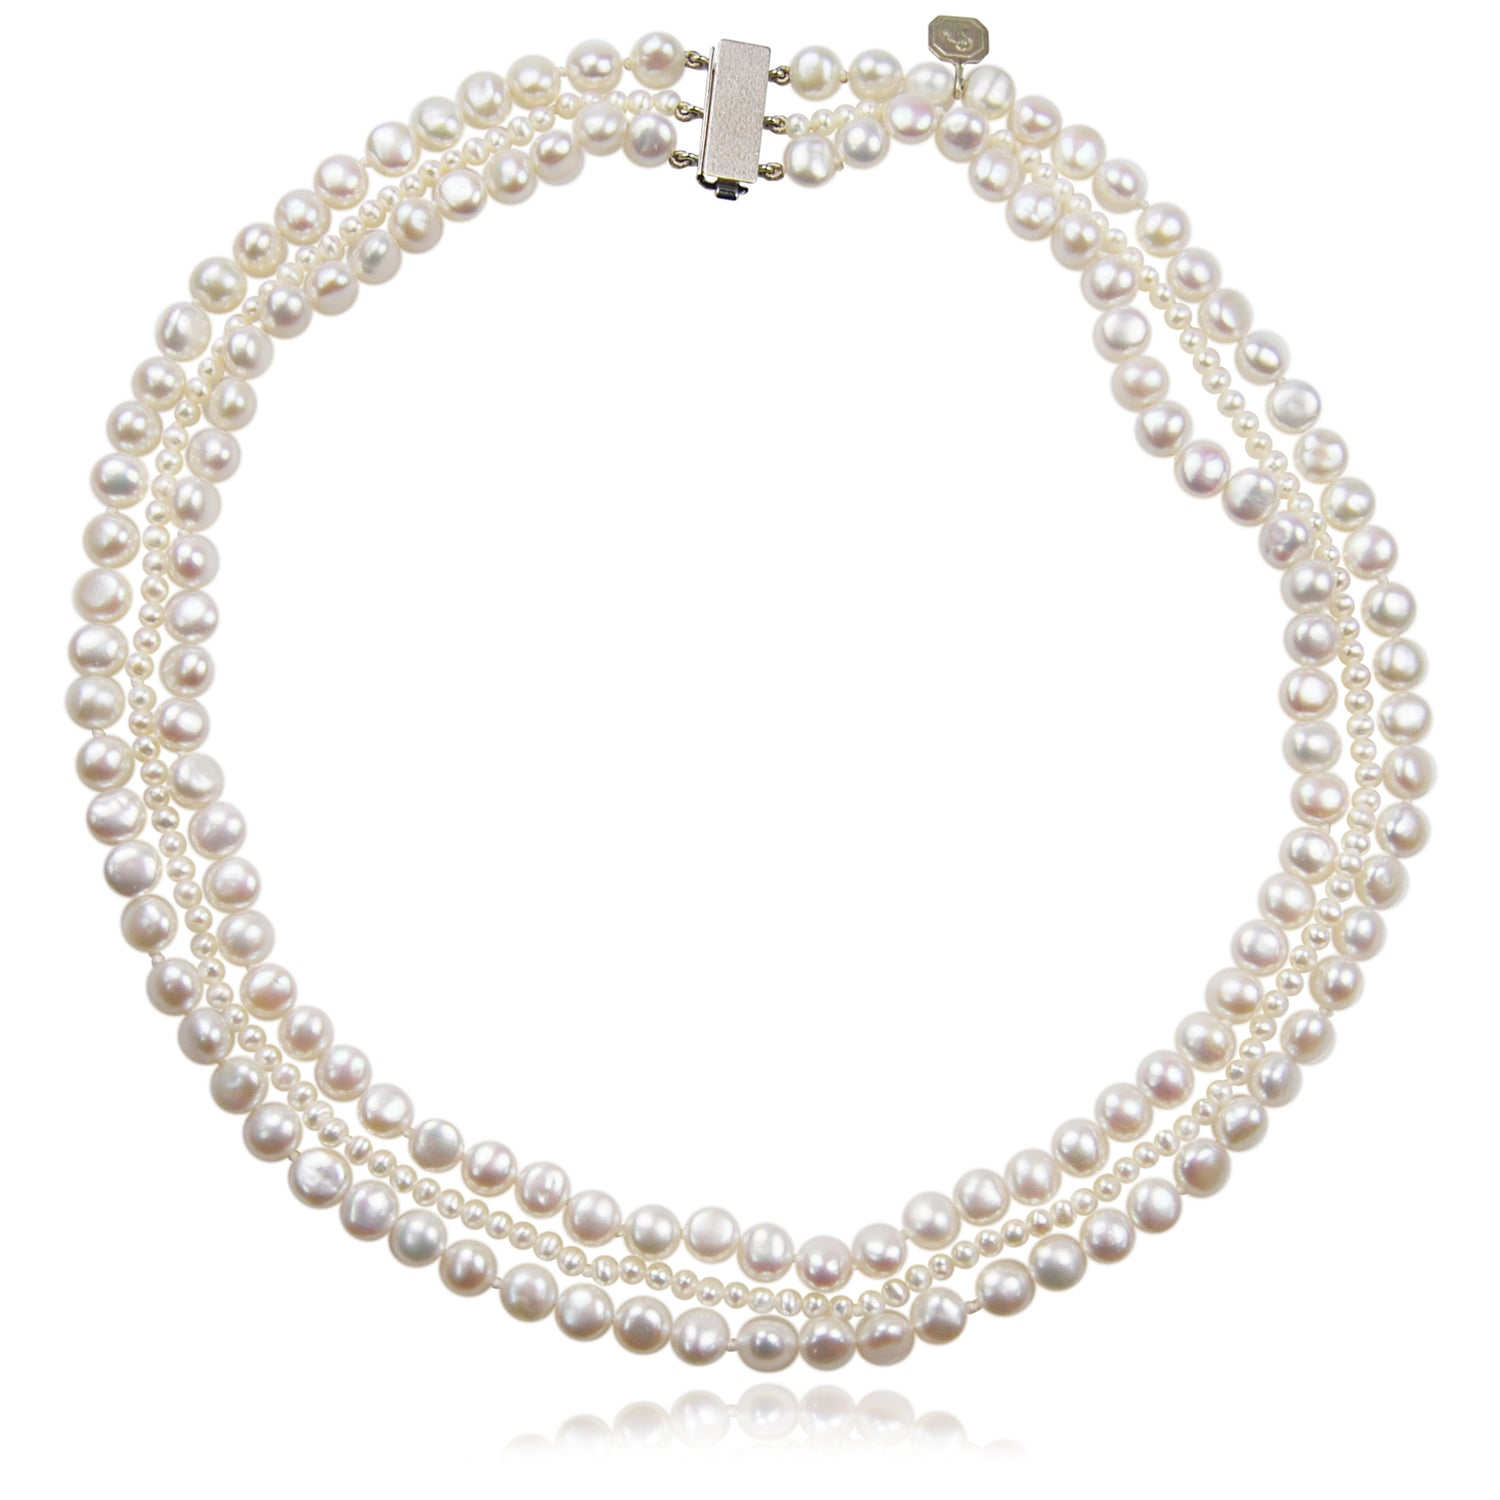 3 Strand Mixed Pearl Necklace in White